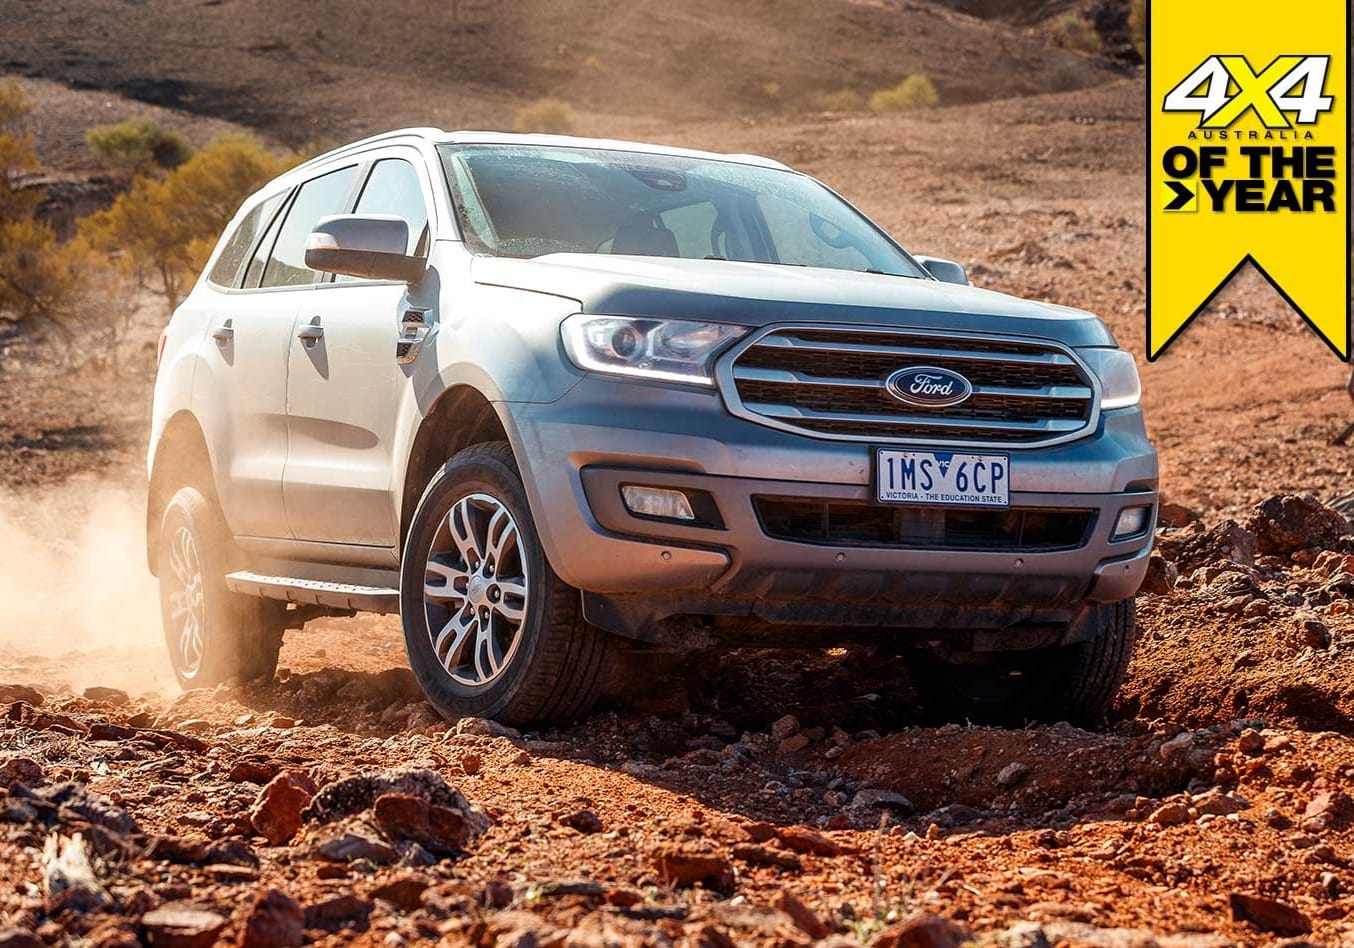 Ford Everest Trend 2019 4x4 of the Year contender